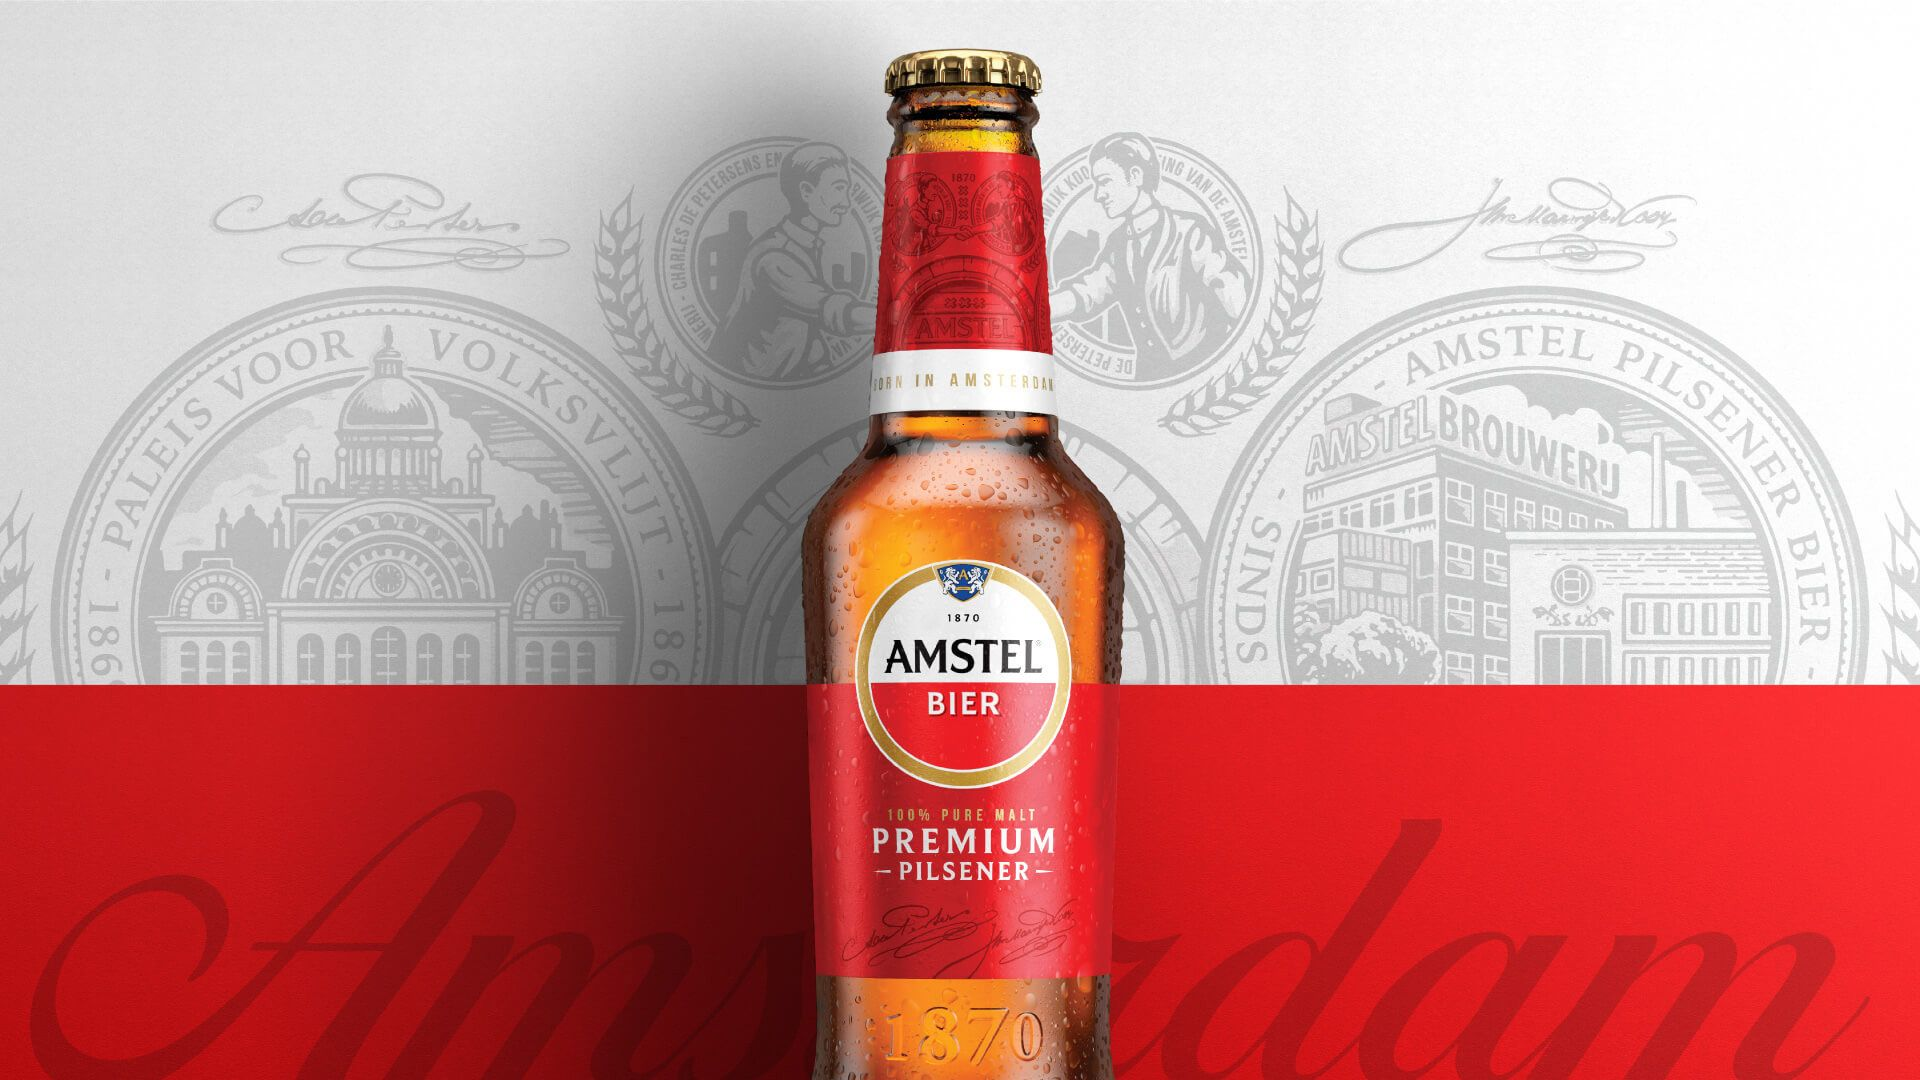 Brand New New Logo And Packaging For Amstel By Elmwood In 2020 Craft Beer Brands Brand Identity Branding Design